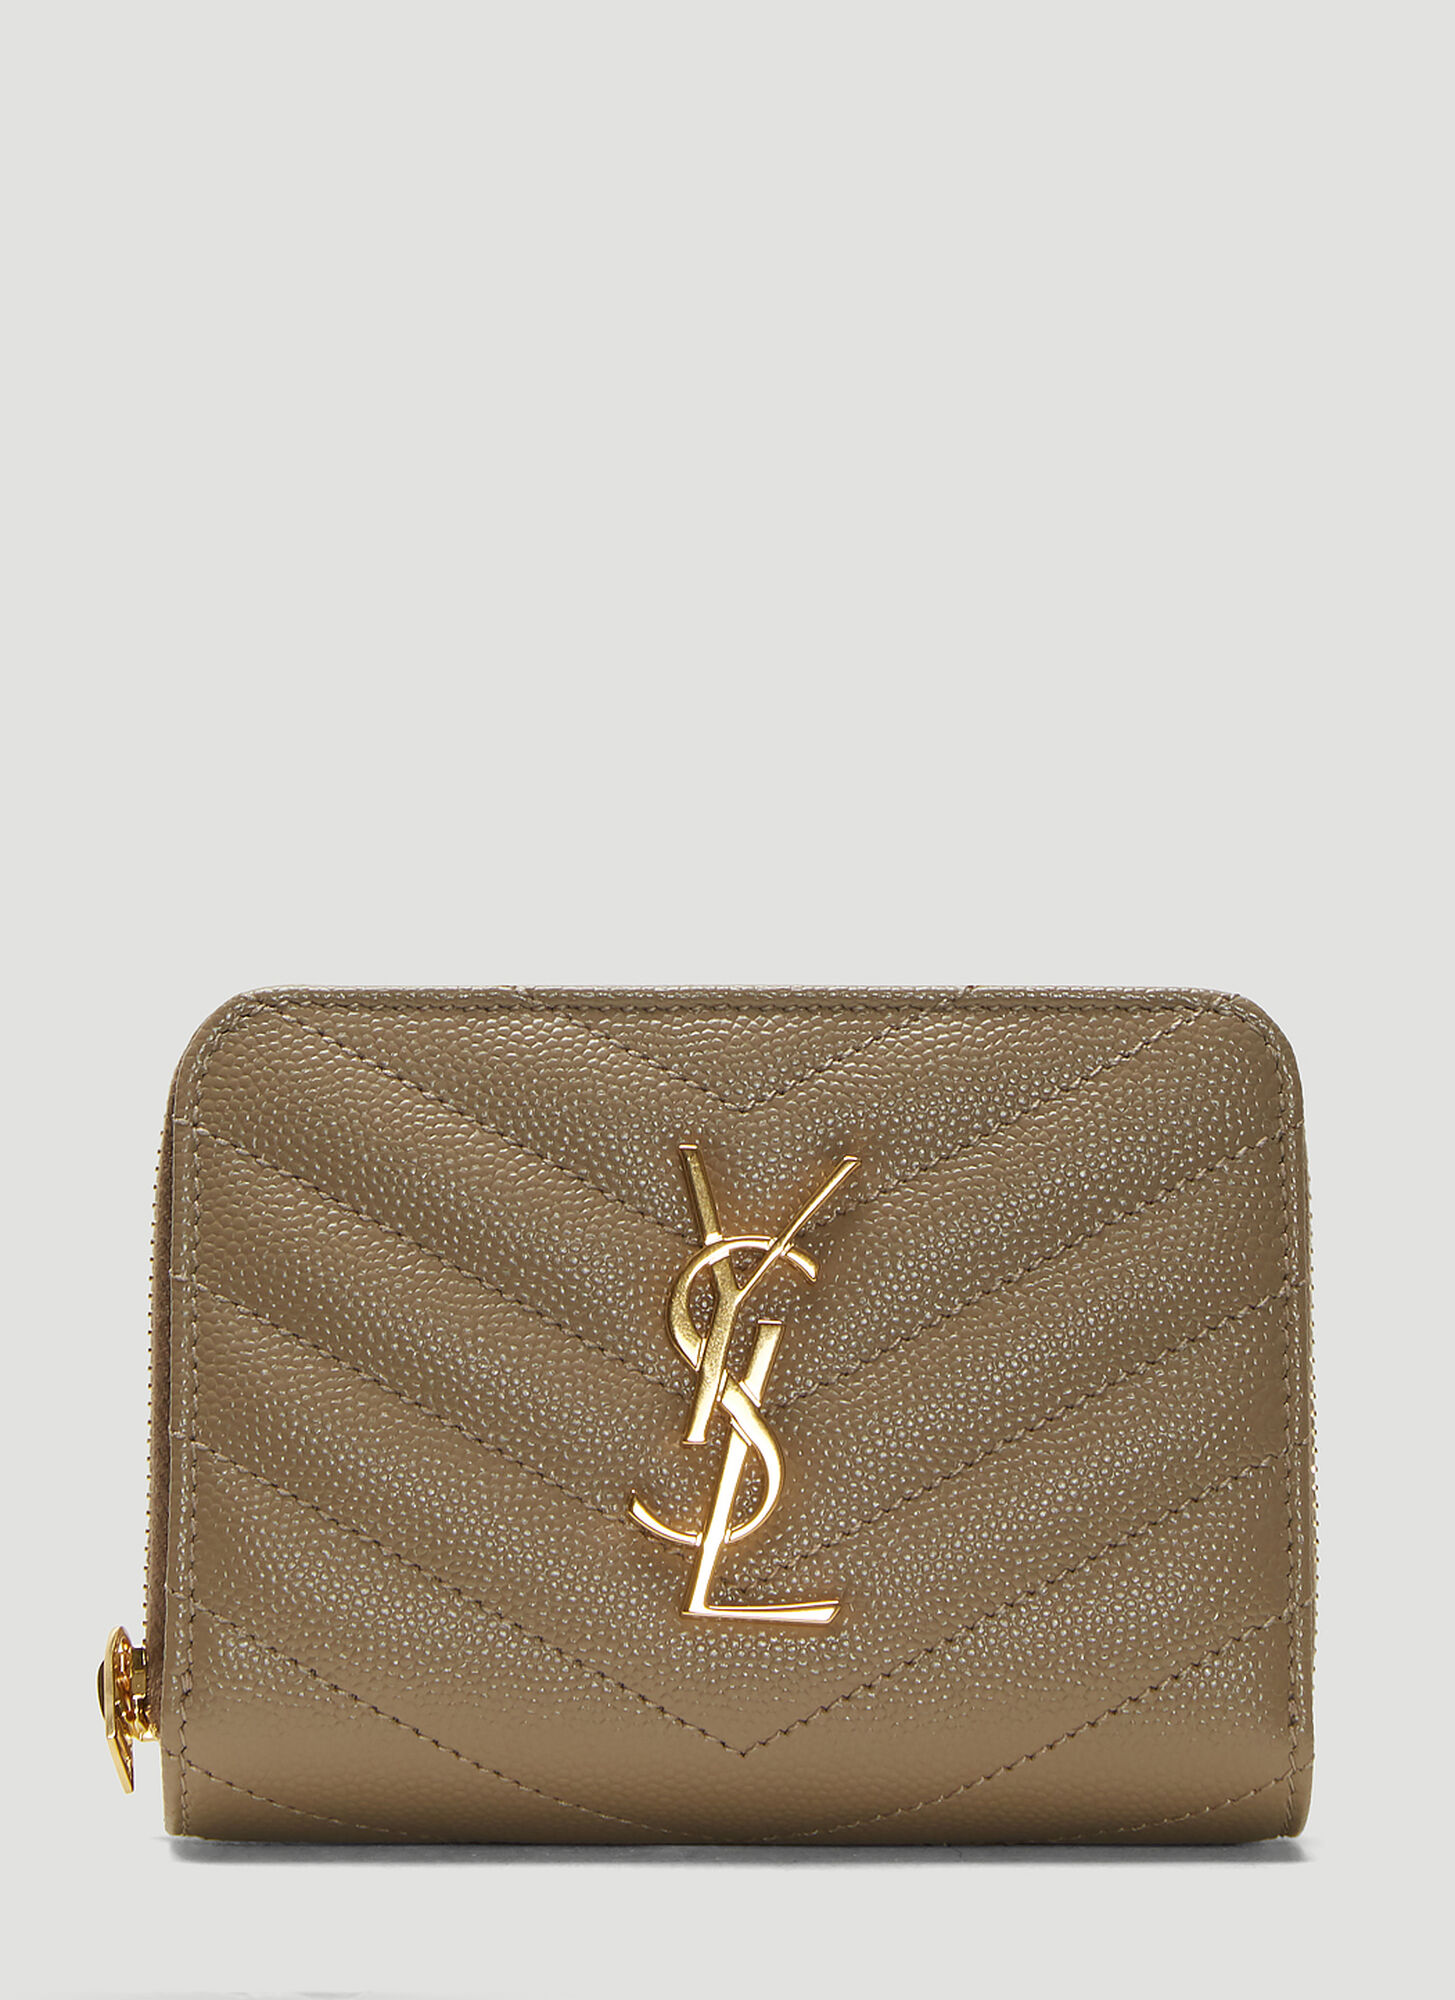 Saint Laurent Monogram Compact Zip-Around Wallet in Beige